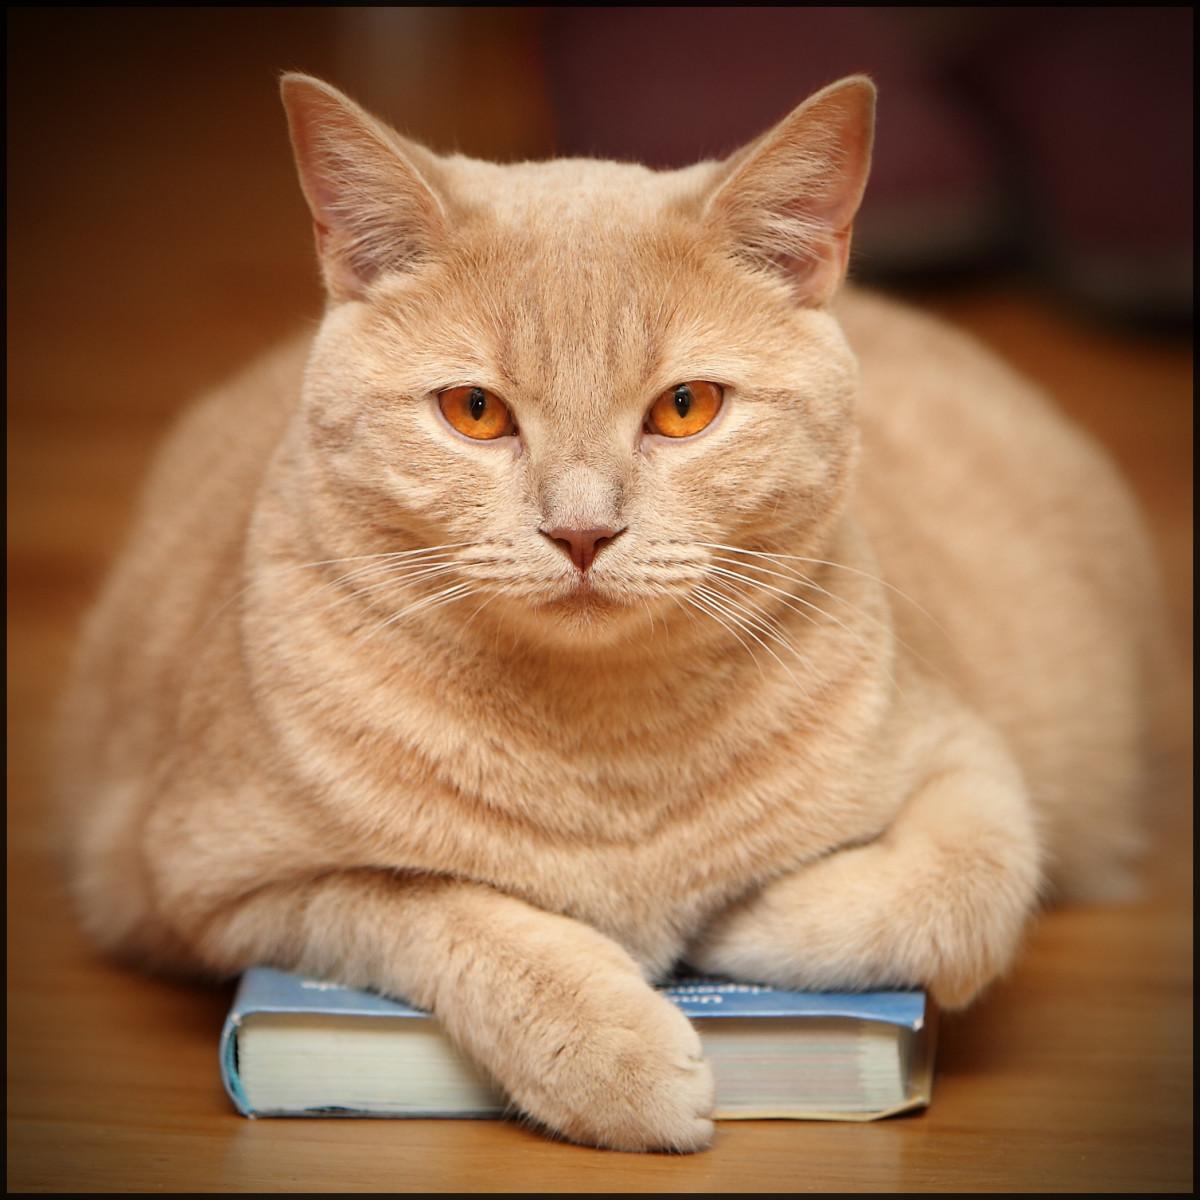 Cats make perfect book buddies.